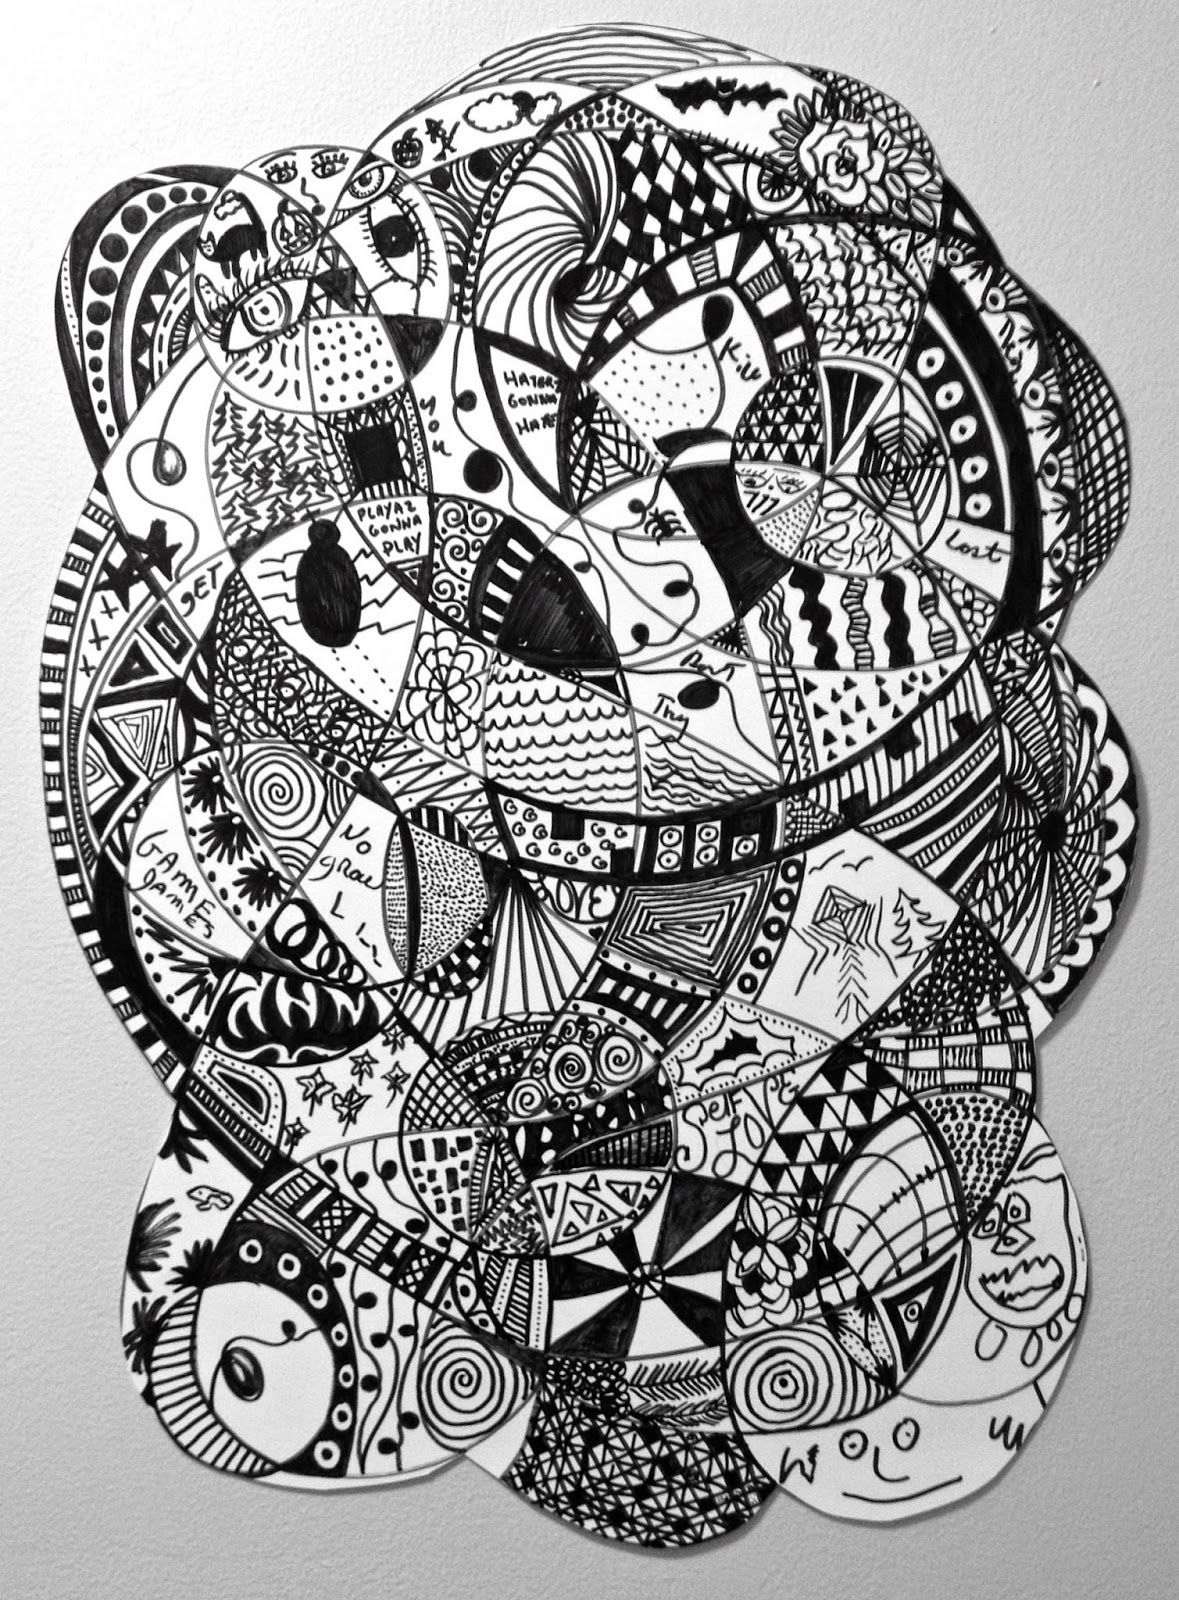 The Newest 20x24 Inch Zentangle From Cynthia Emerlye S Art